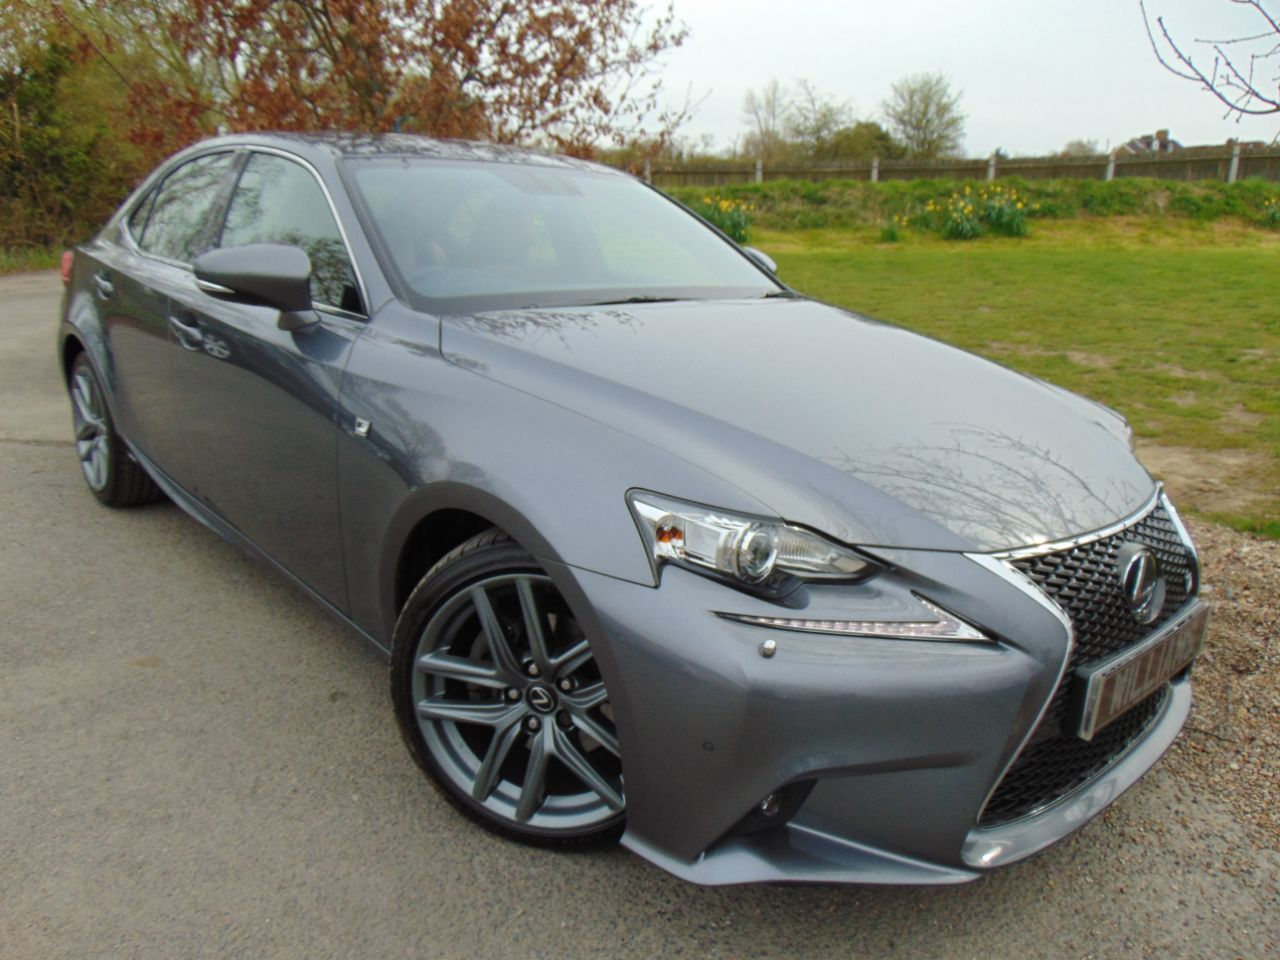 Lexus IS 2.5 300h F-Sport 4dr CVT Auto (Heated and Vented Seats! FLSH! ++) Saloon Petrol / Electric Hybrid Grey